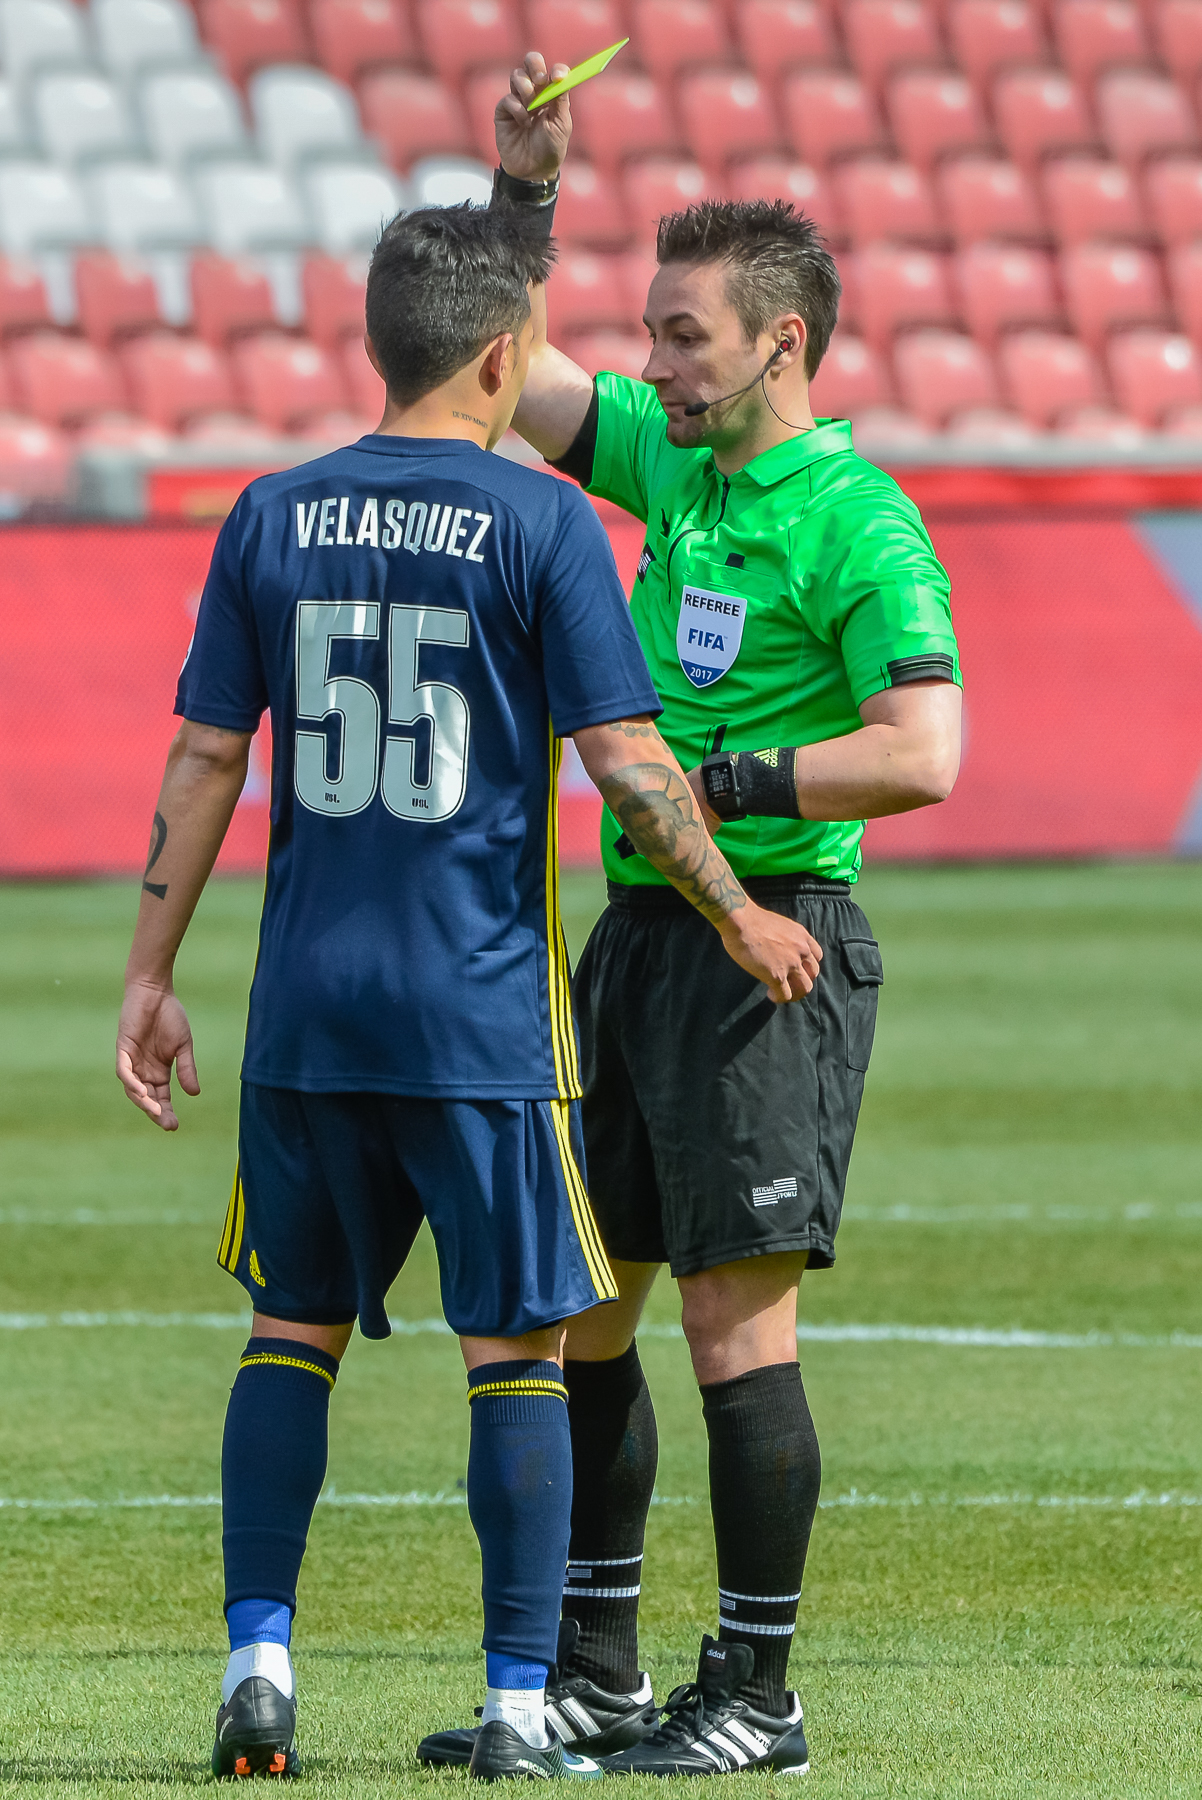 Sebastian Velasquez is shown a yellow card for Real Monarchs.